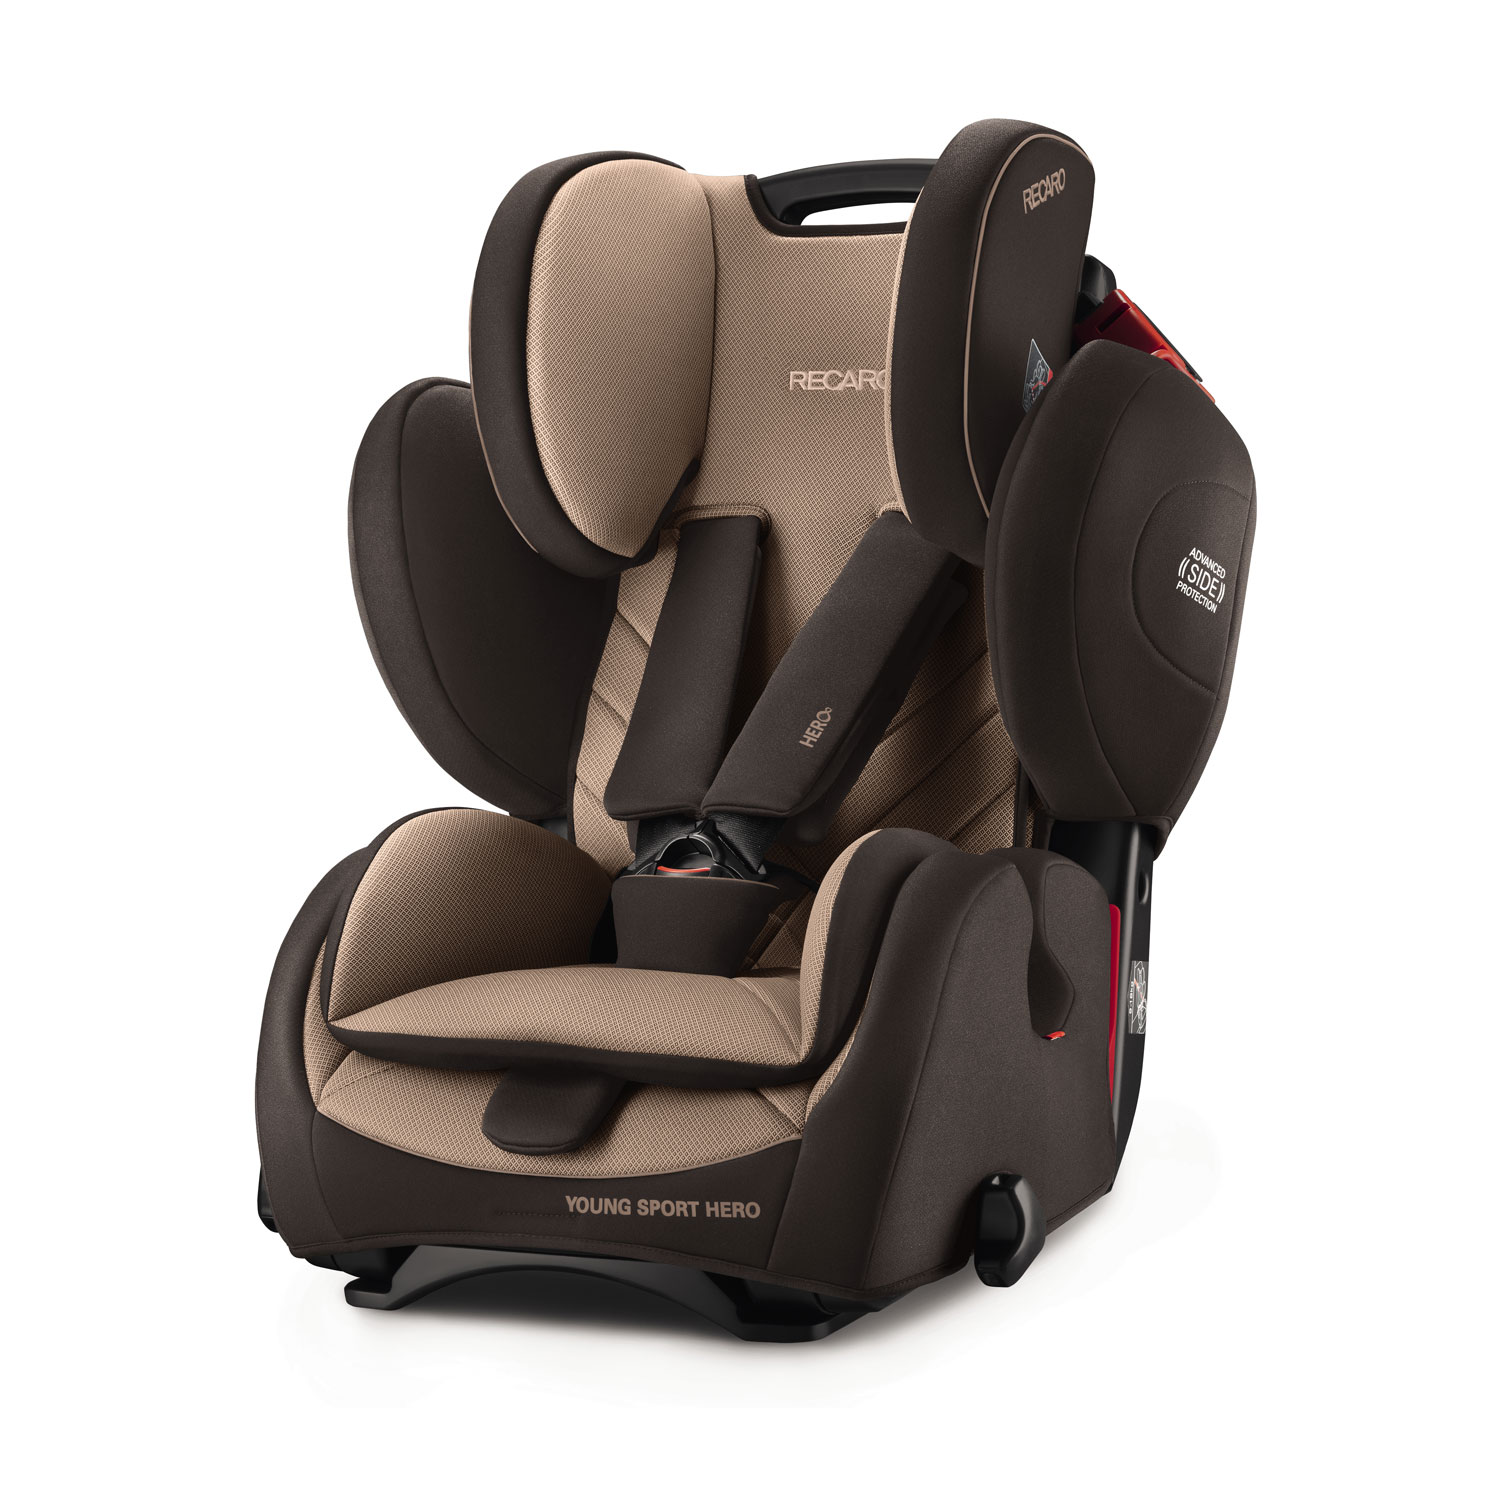 recaro young sport hero dakar sand auto kindersitze 9 36 kg dakar sand fahrzeugaufbau. Black Bedroom Furniture Sets. Home Design Ideas